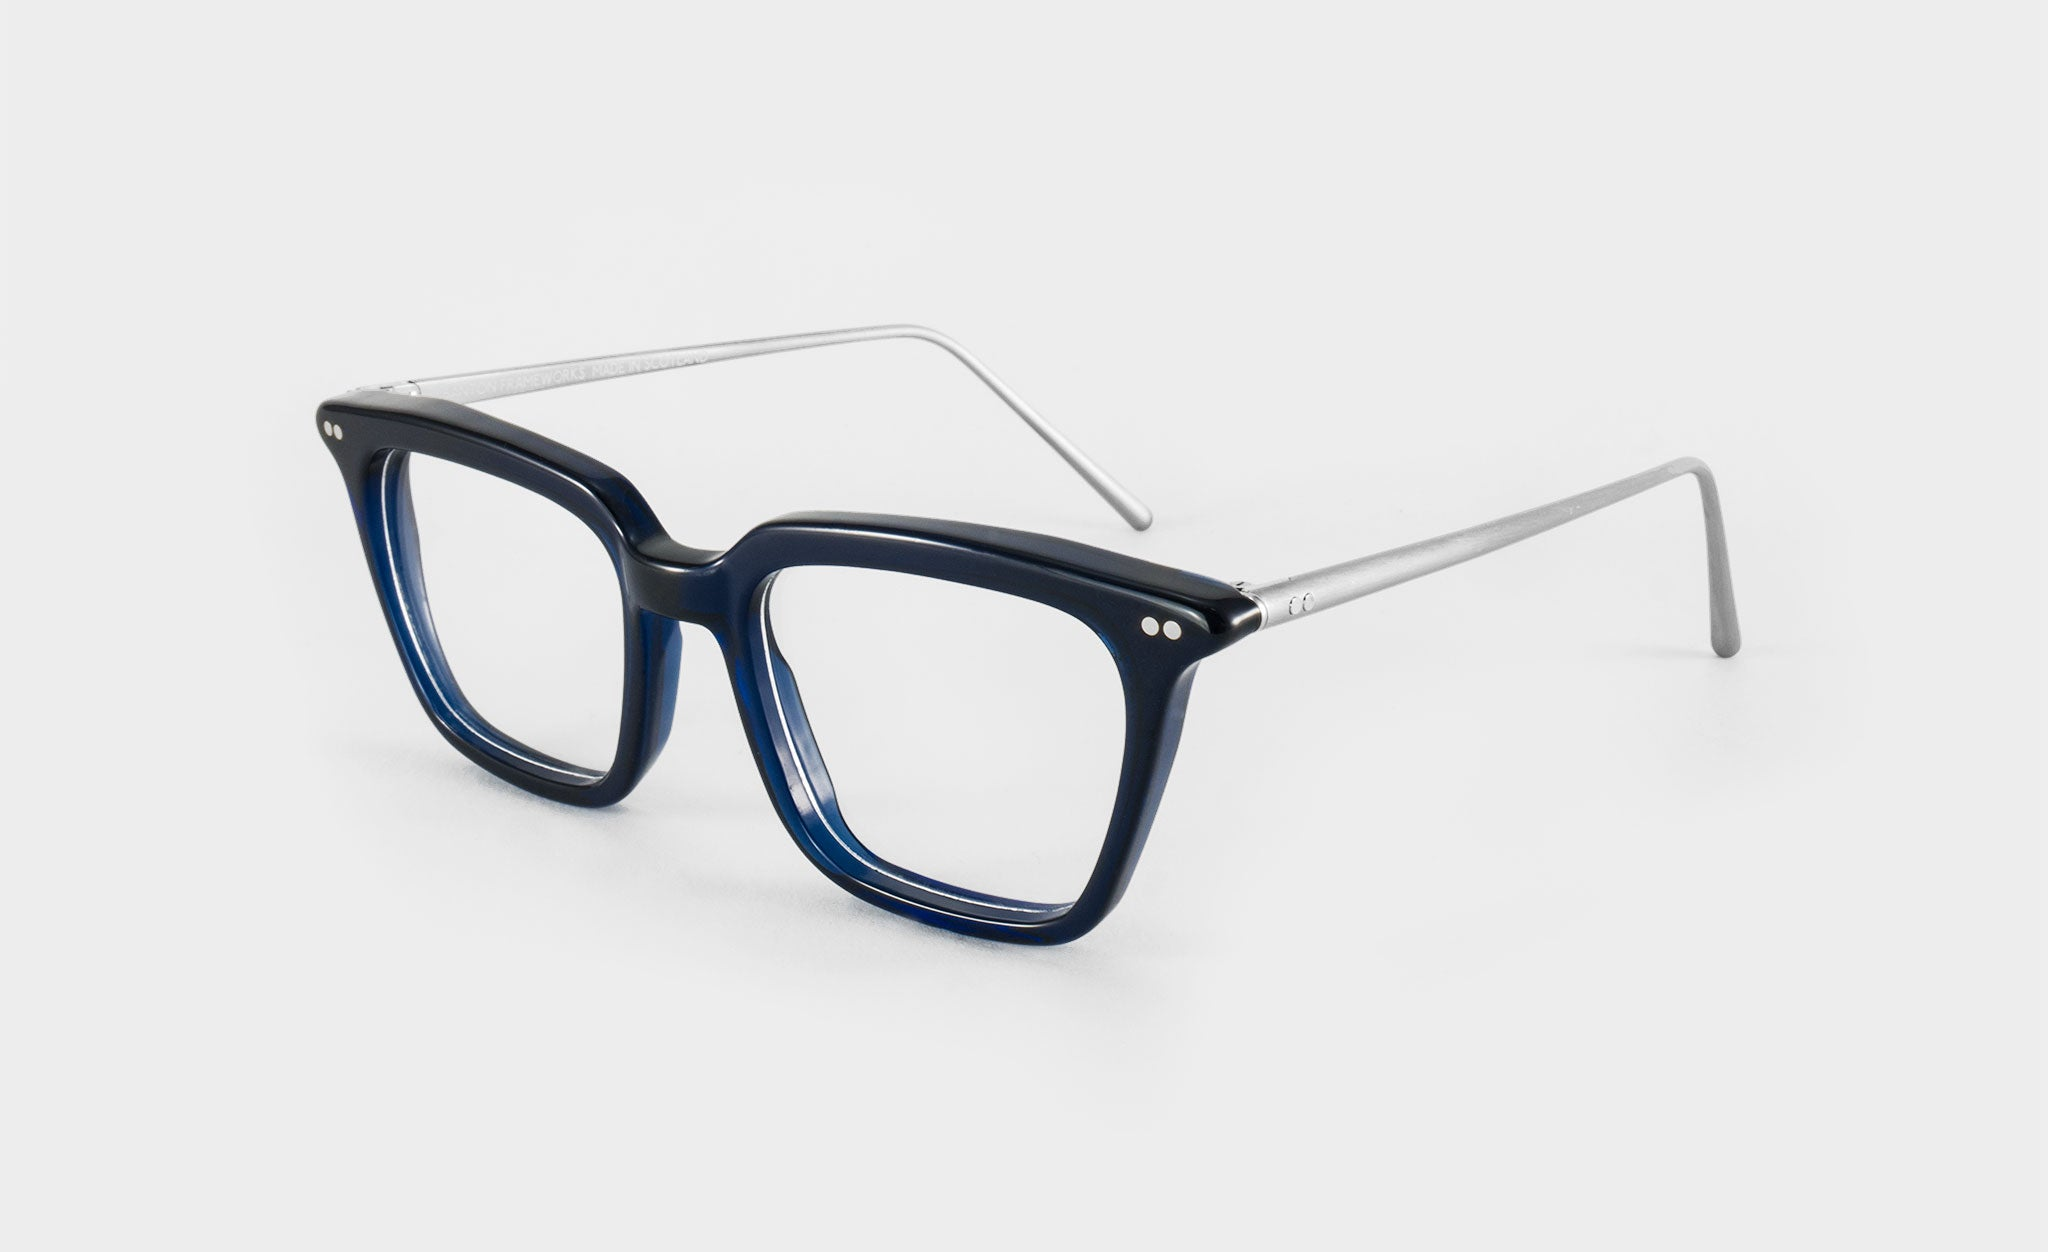 blue-glasses-frame-square-side-view